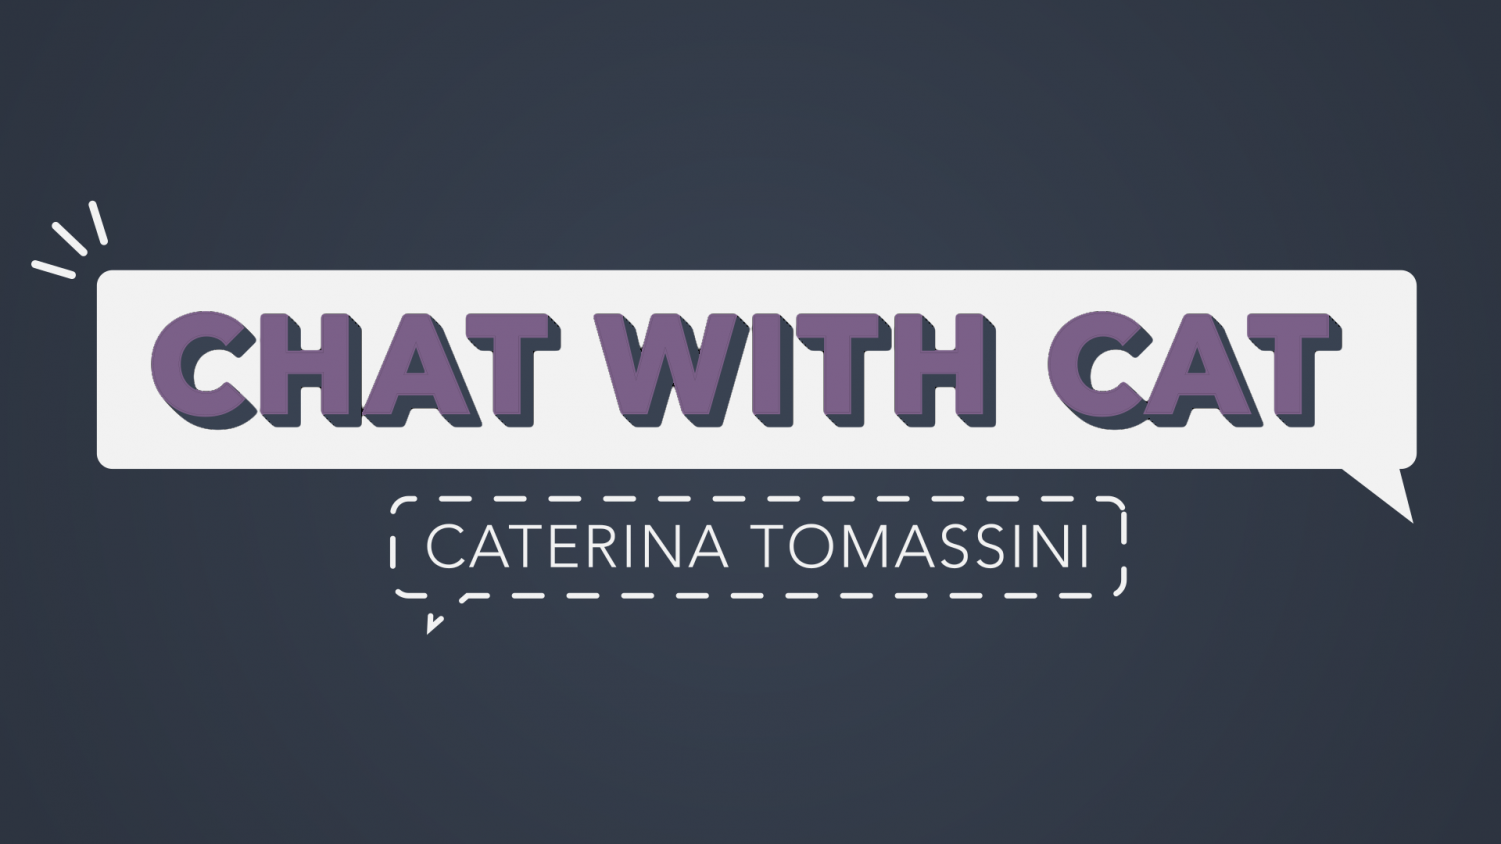 Chat with Cat: It's just a matter of time